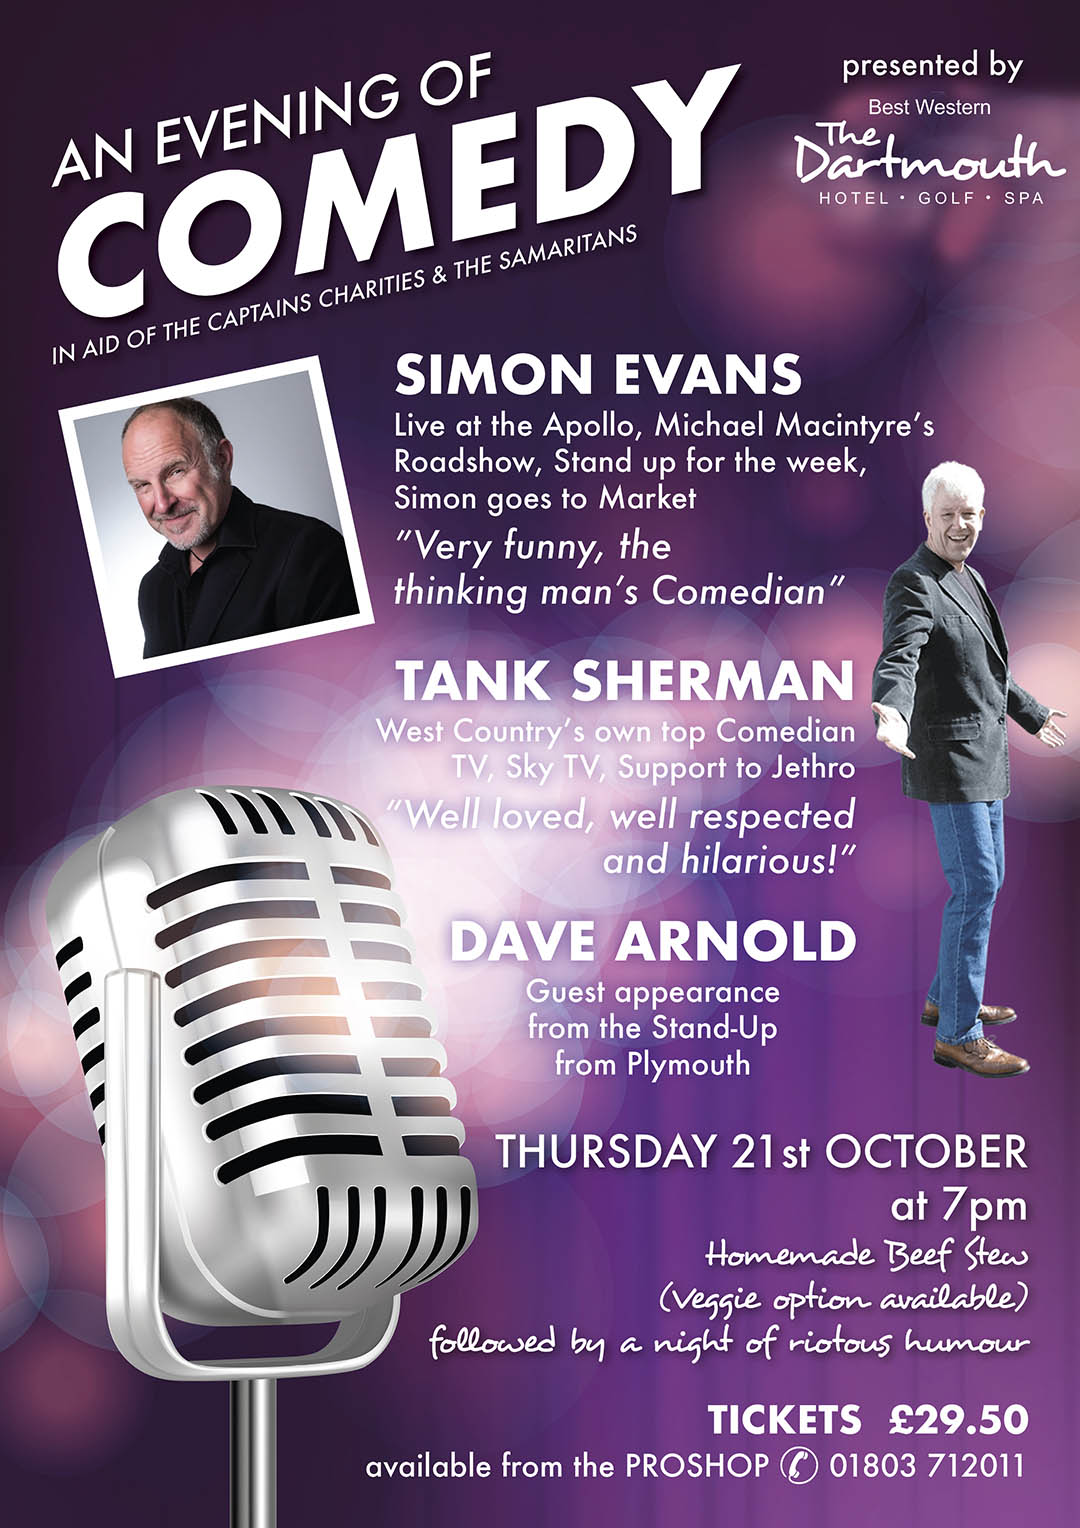 Comedy Night with Simon Evans, Tank Sherman and Dave Arnold Thursday 21st October